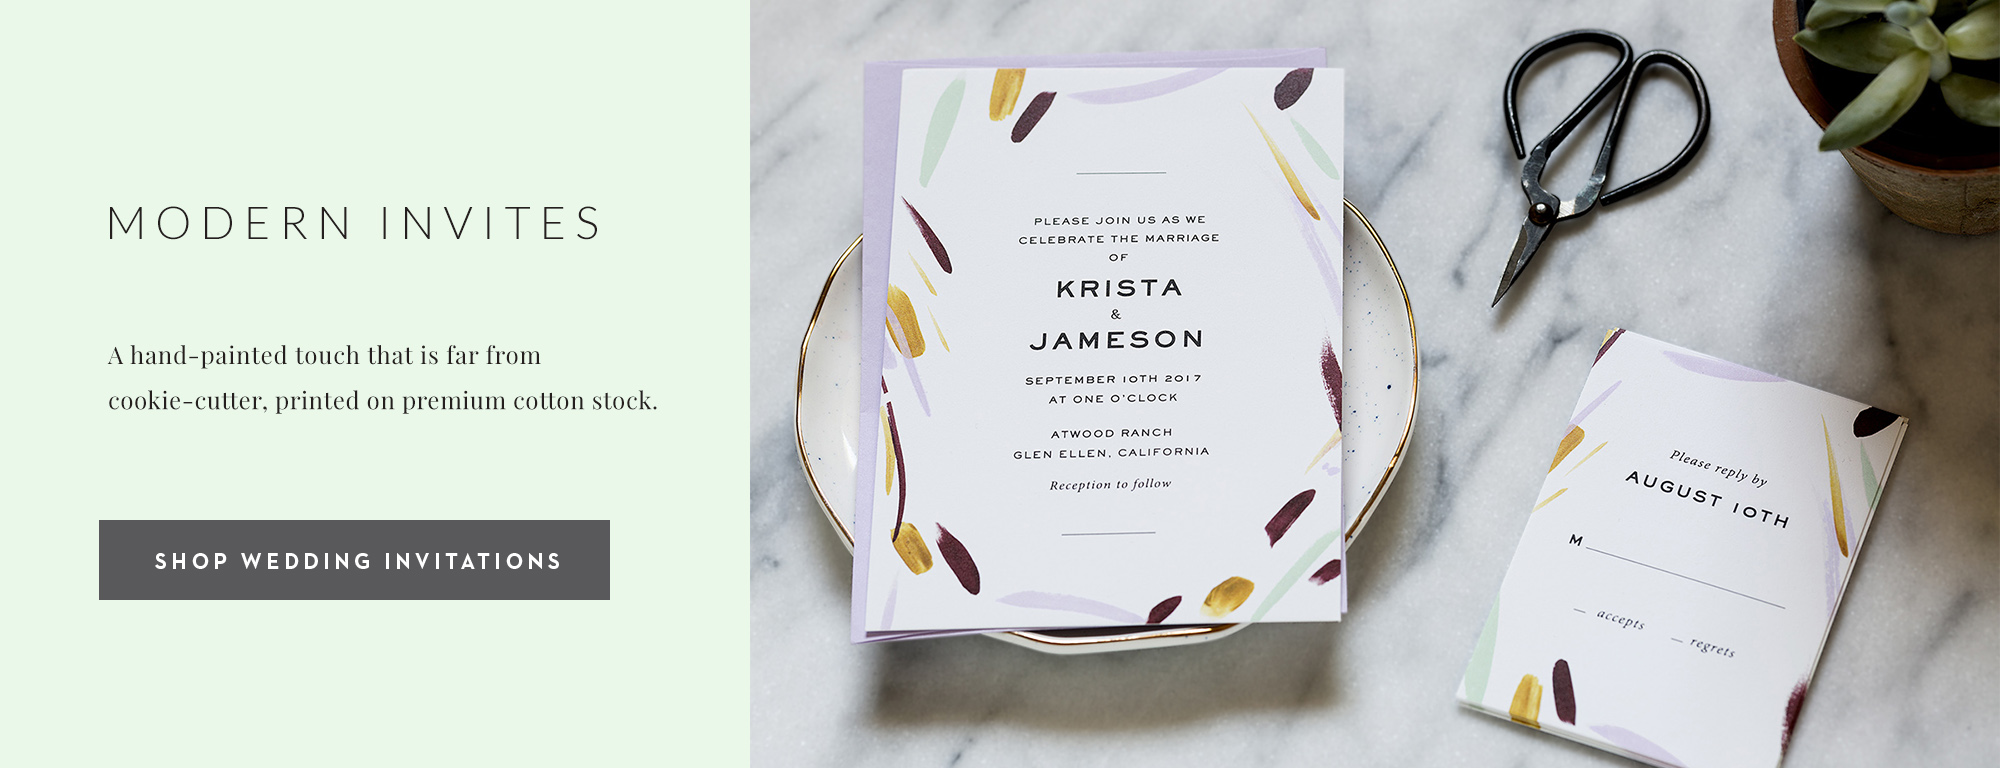 Modern Wedding Invitations by Fine Day Press, Austin, Texas - Fine ...